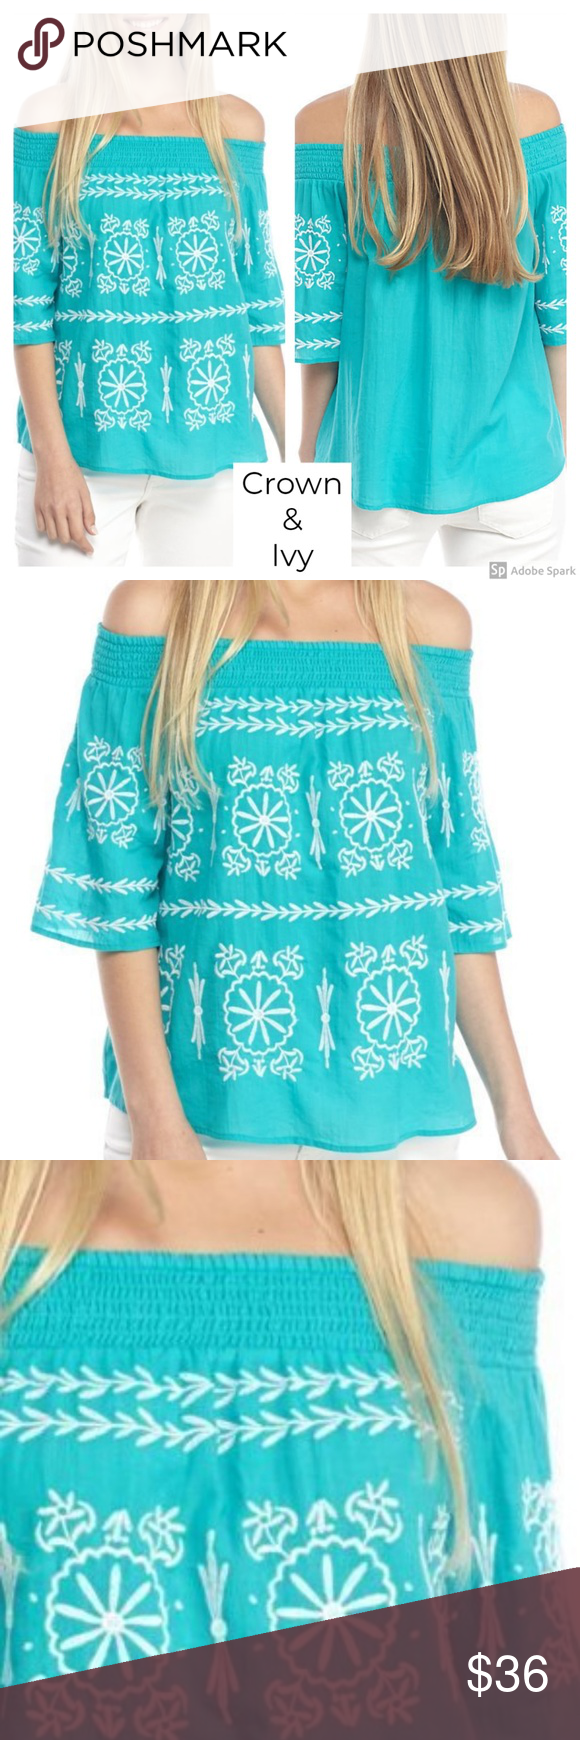 142ed2d434 Crown   Ivy Off Shoulder Embroidered Turquoise Top CROWN   IVY women s  Turquoise blue woven smocked